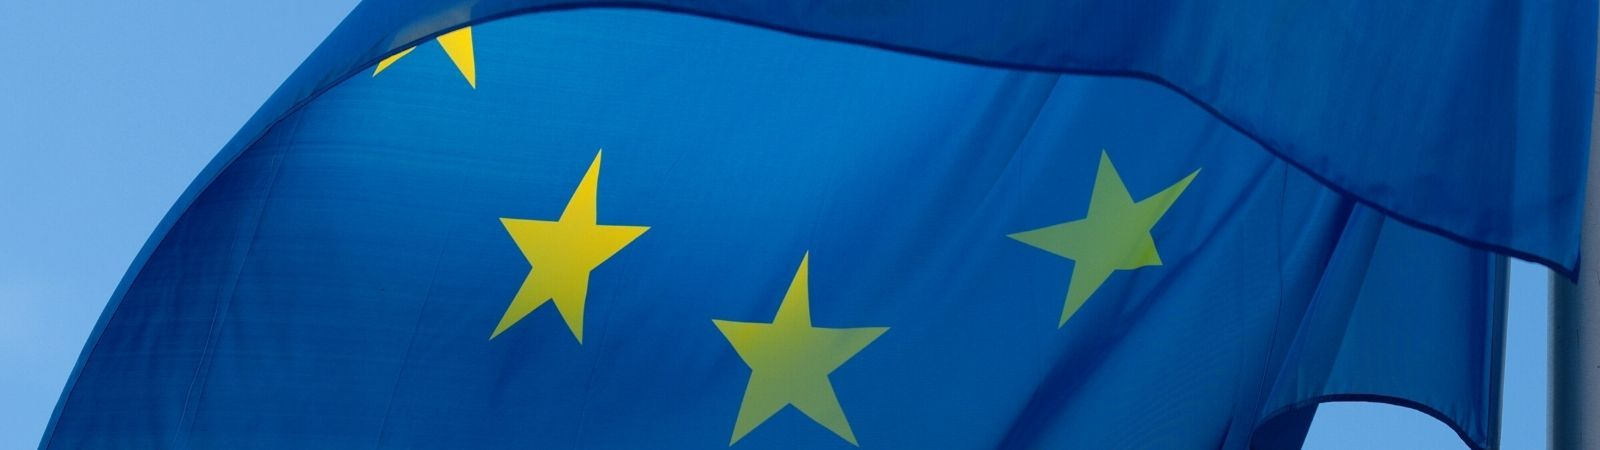 Close up of the EU flag waving in the wind against a bright blue, cloudless sky.